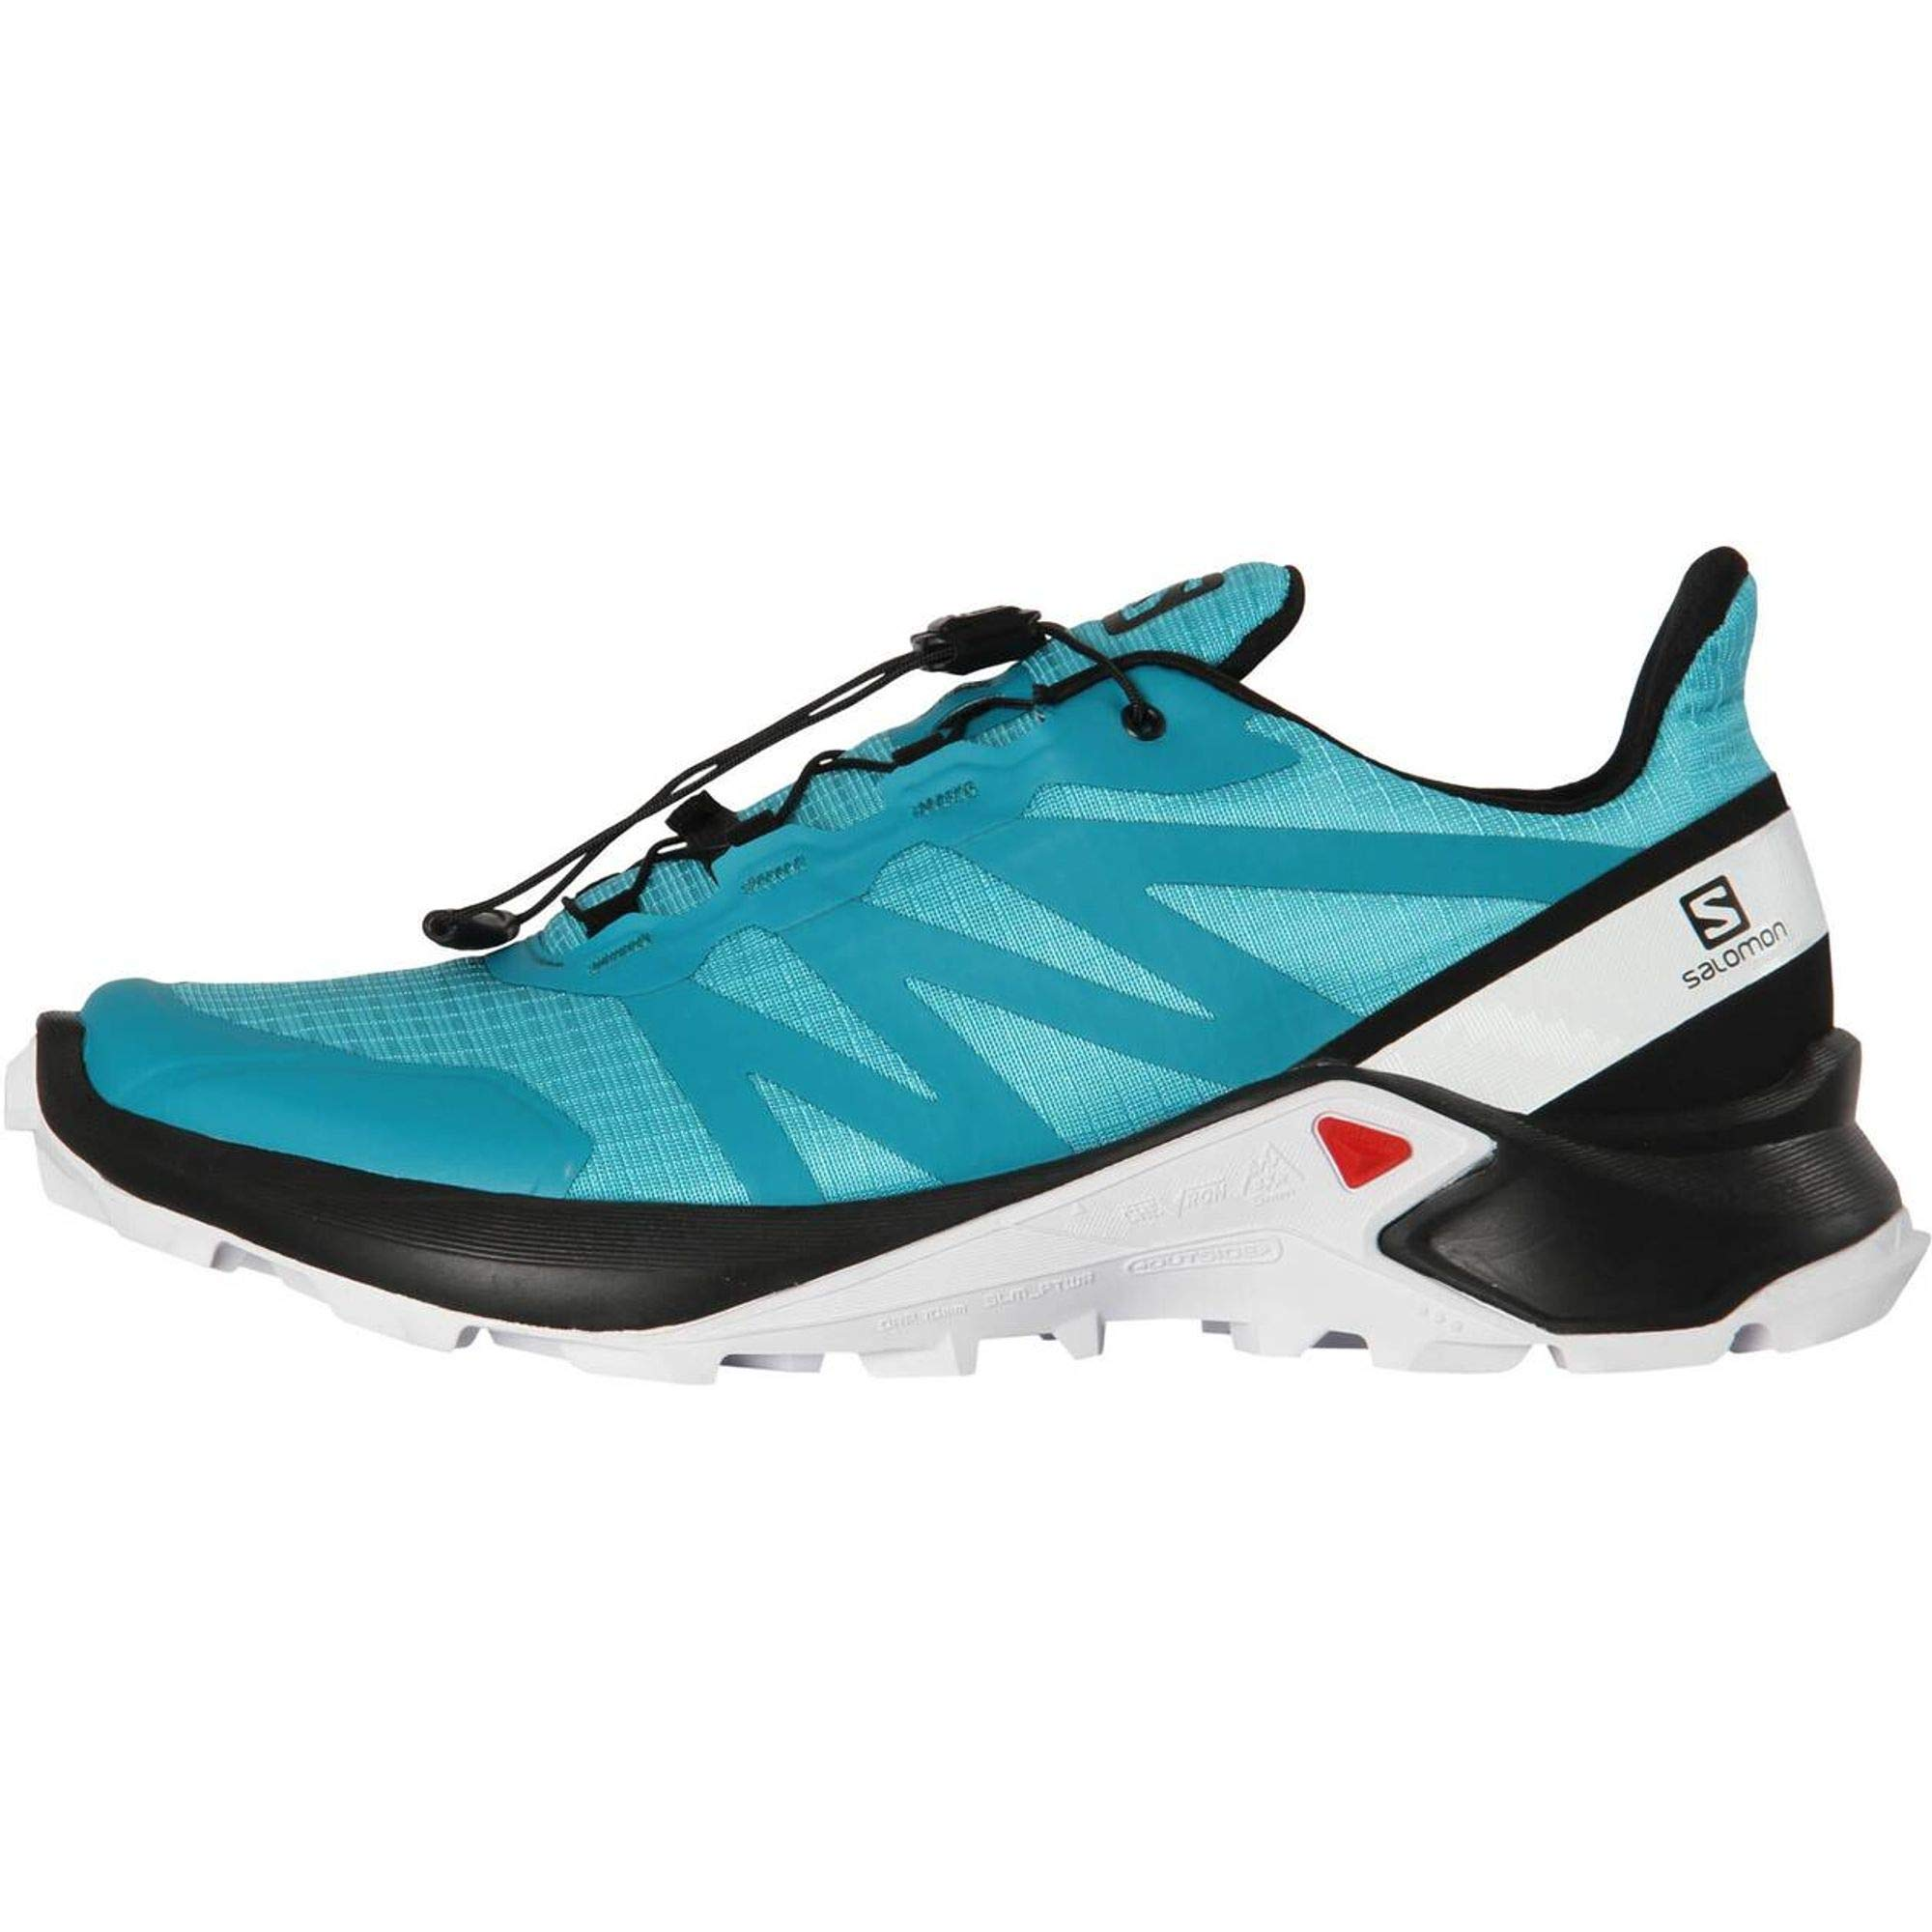 Salomon Supercross - Zapatillas de running para mujer, color turquesa, azul, EU 38.5 - UK 5,5: Amazon.es: Deportes y aire libre